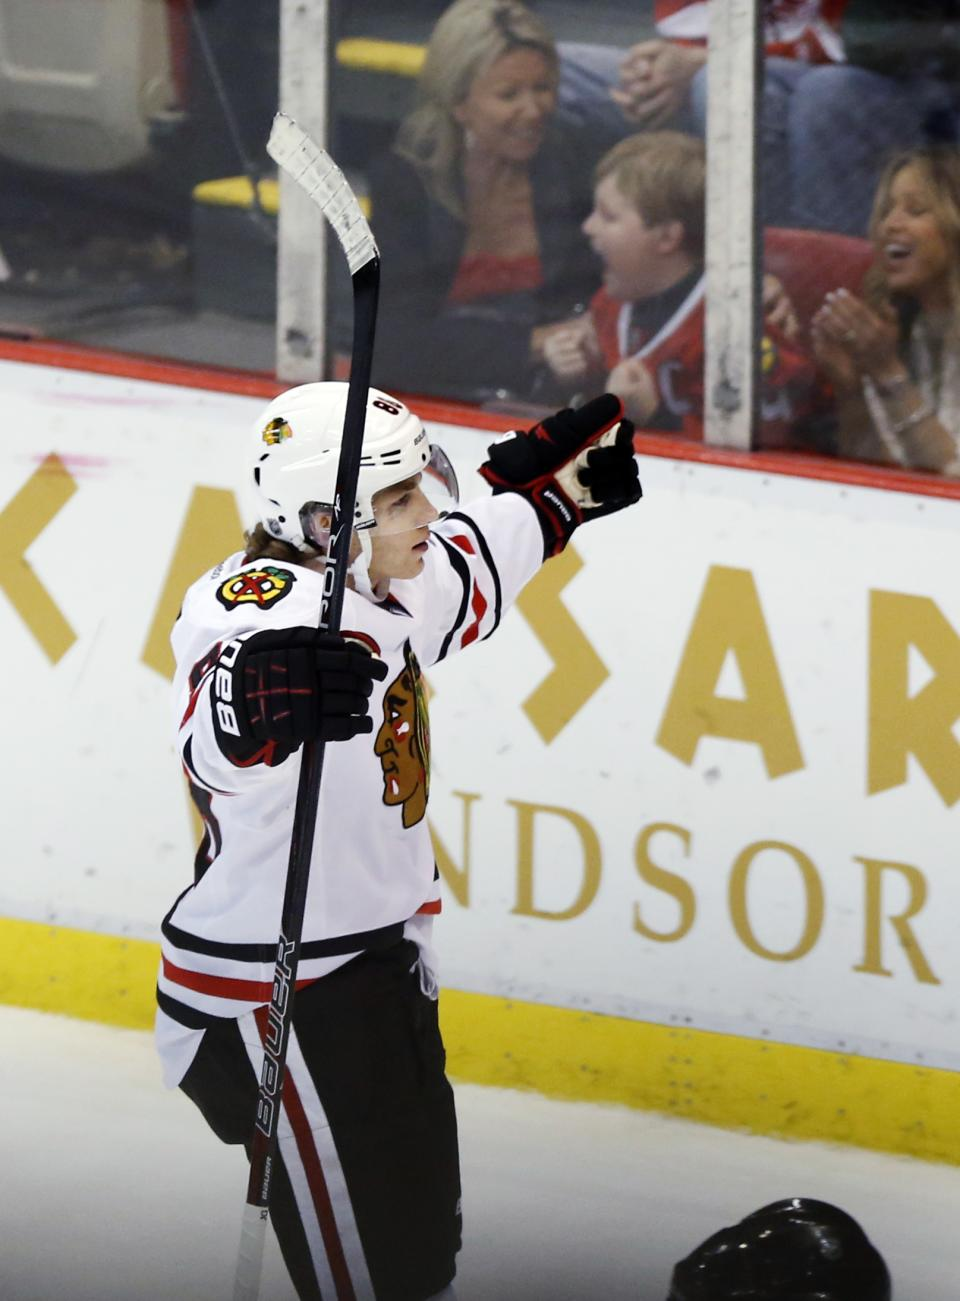 Chicago Blackhawks right wing Patrick Kane celebrates his shootout goal to defeat the Detroit Red Wings 2-1 in an NHL hockey game, Sunday, March 3, 2013, in Detroit. (AP Photo/Duane Burleson)